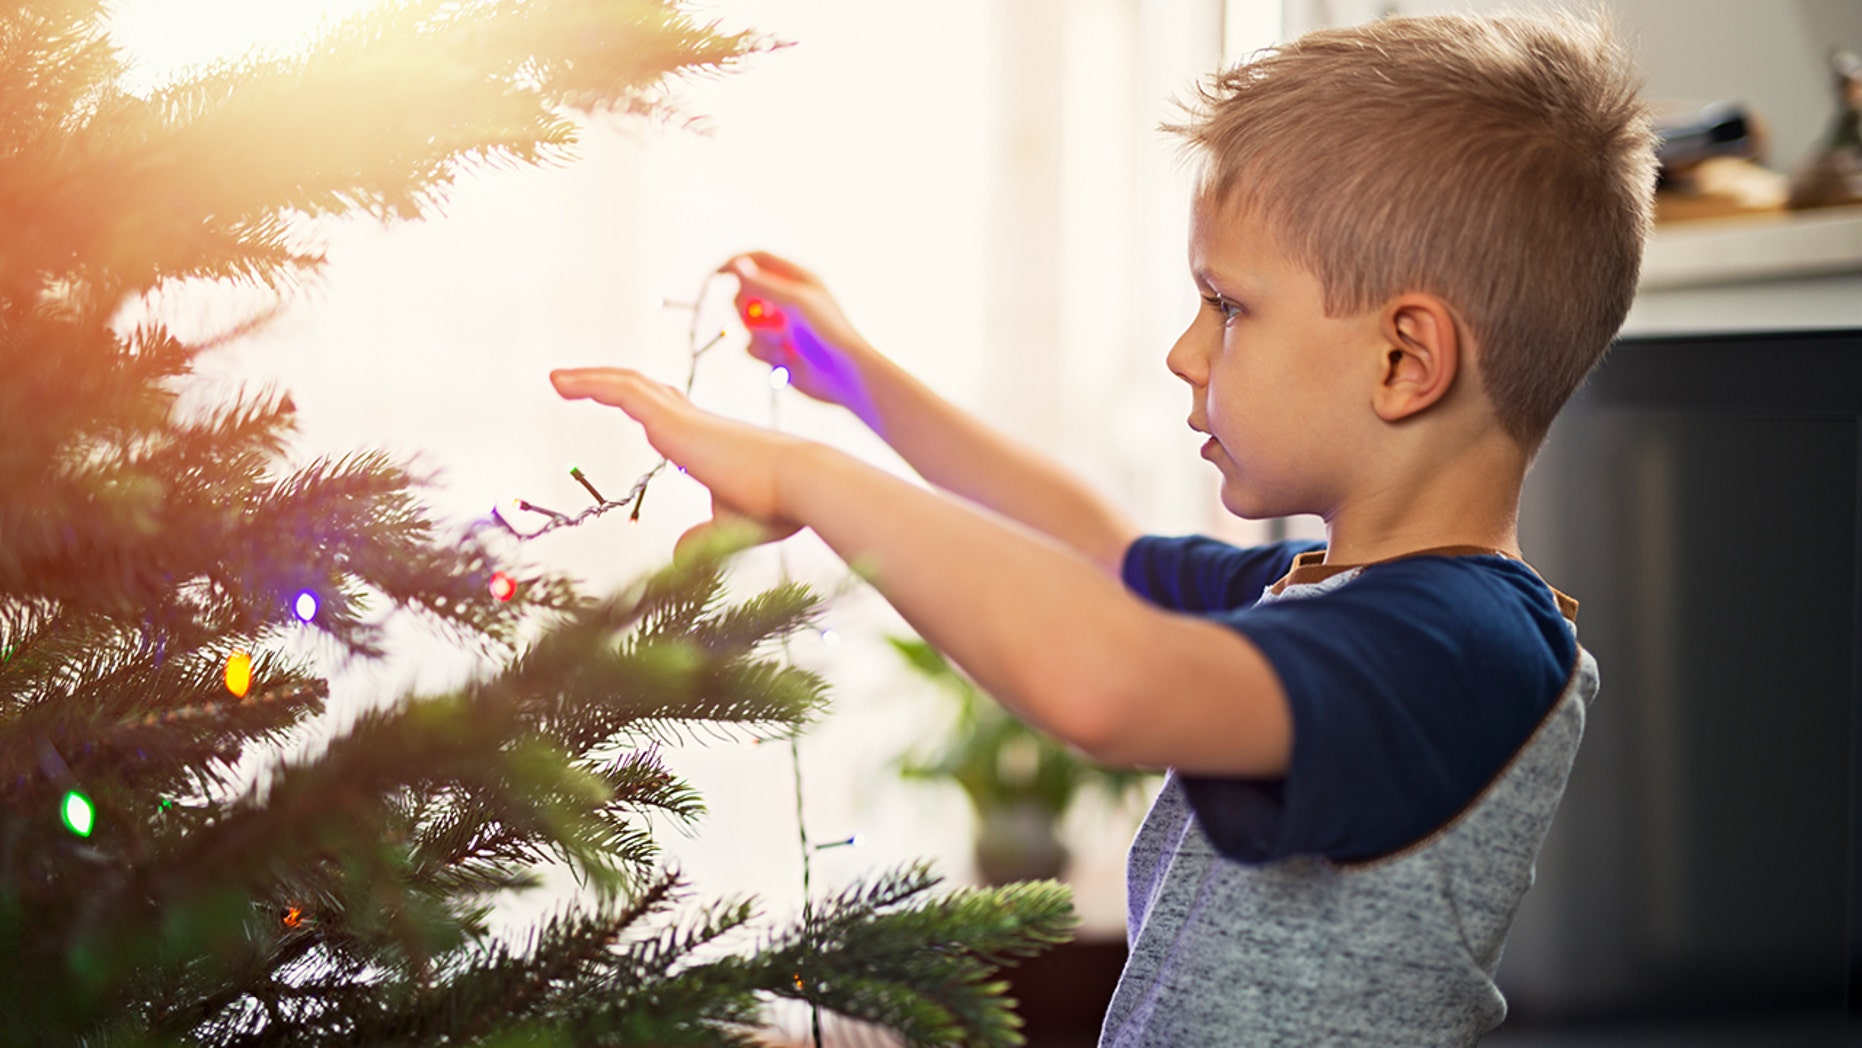 Chances are you've been hanging your Christmas tree lights wrong